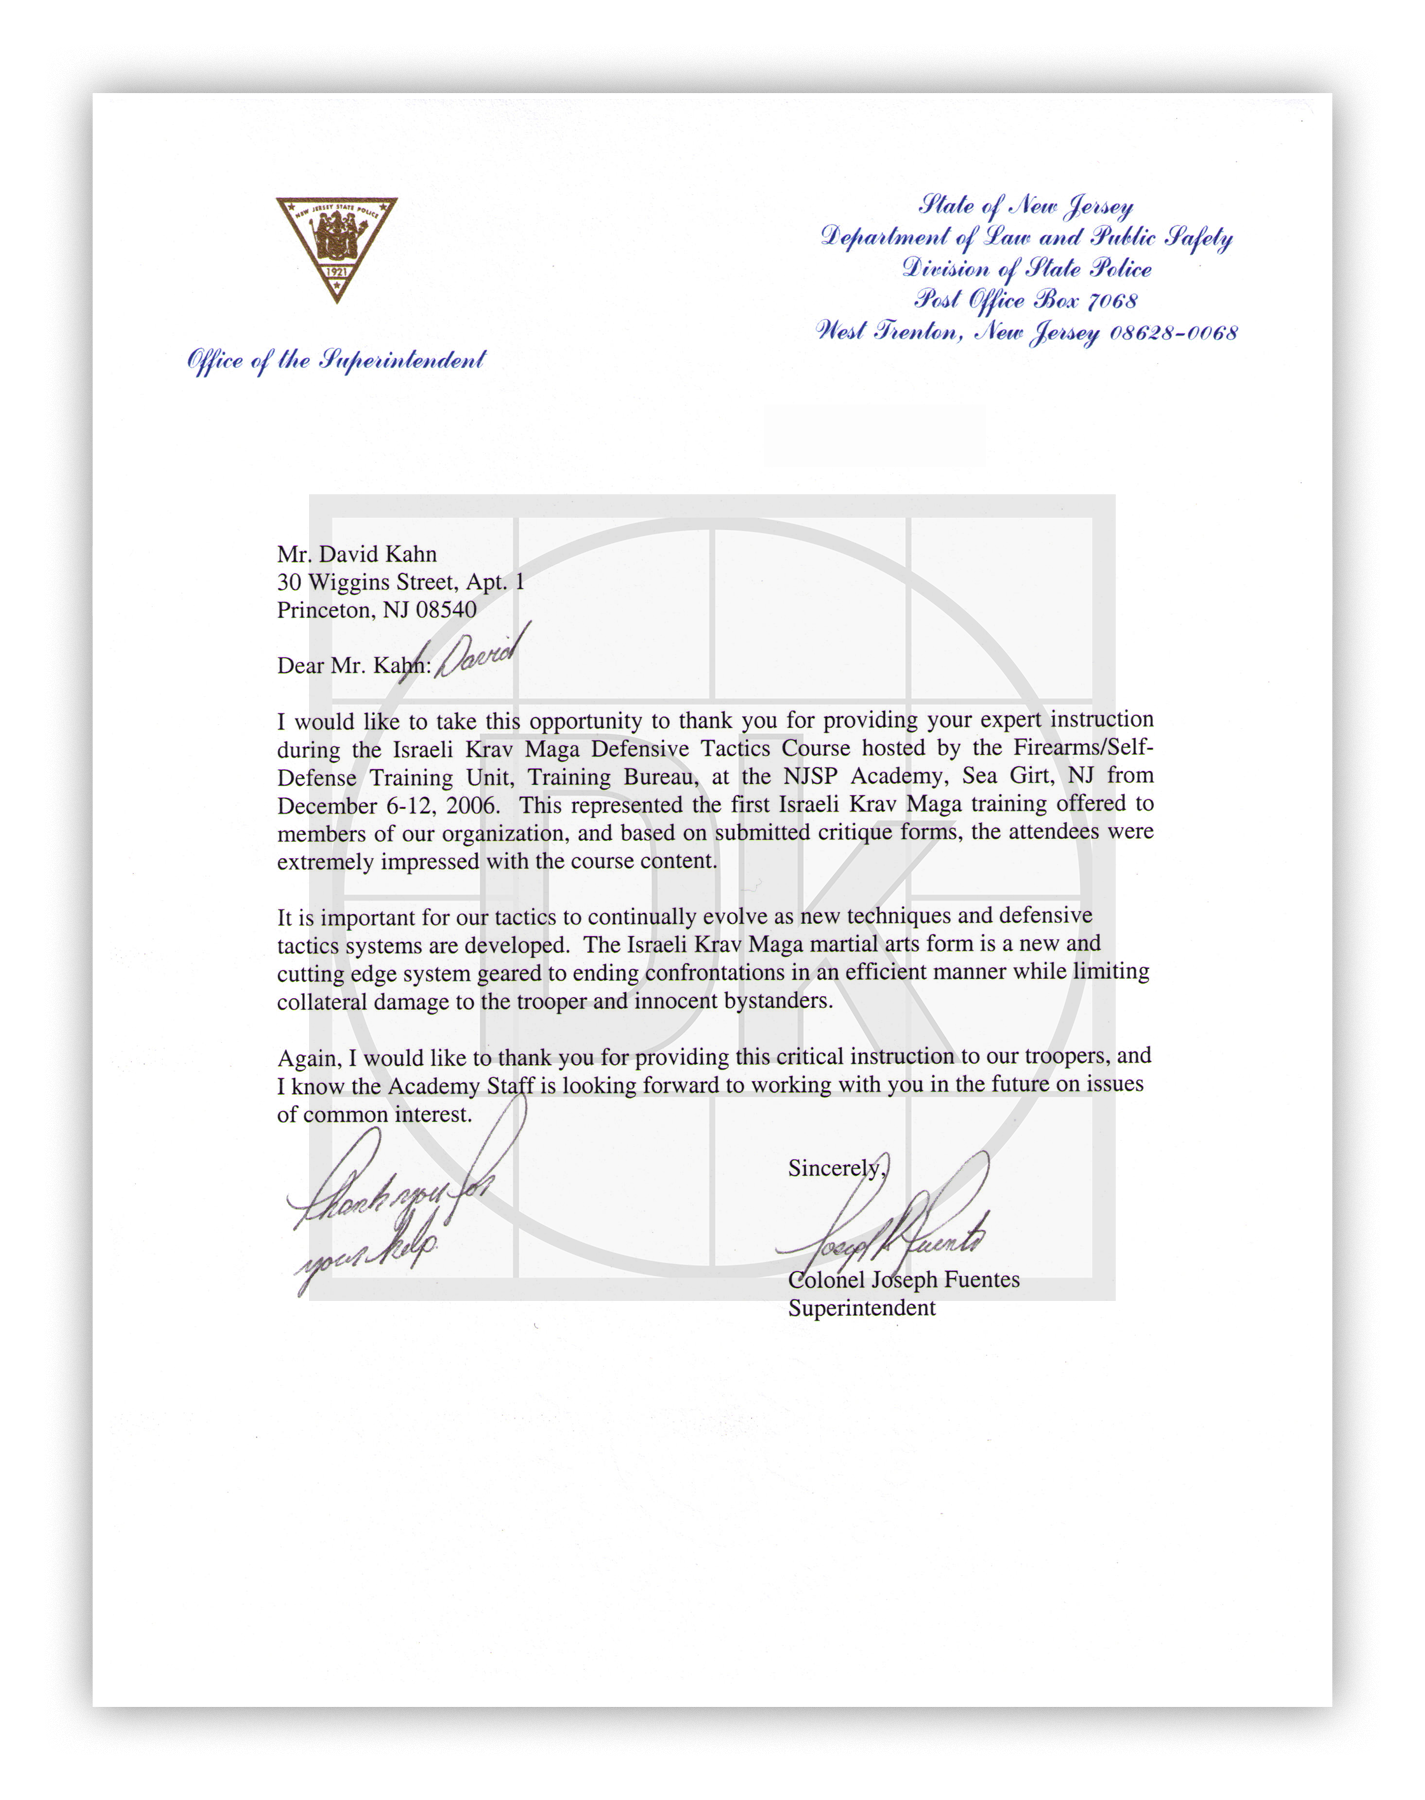 New Jersey Department of Law and Safety Division of Police